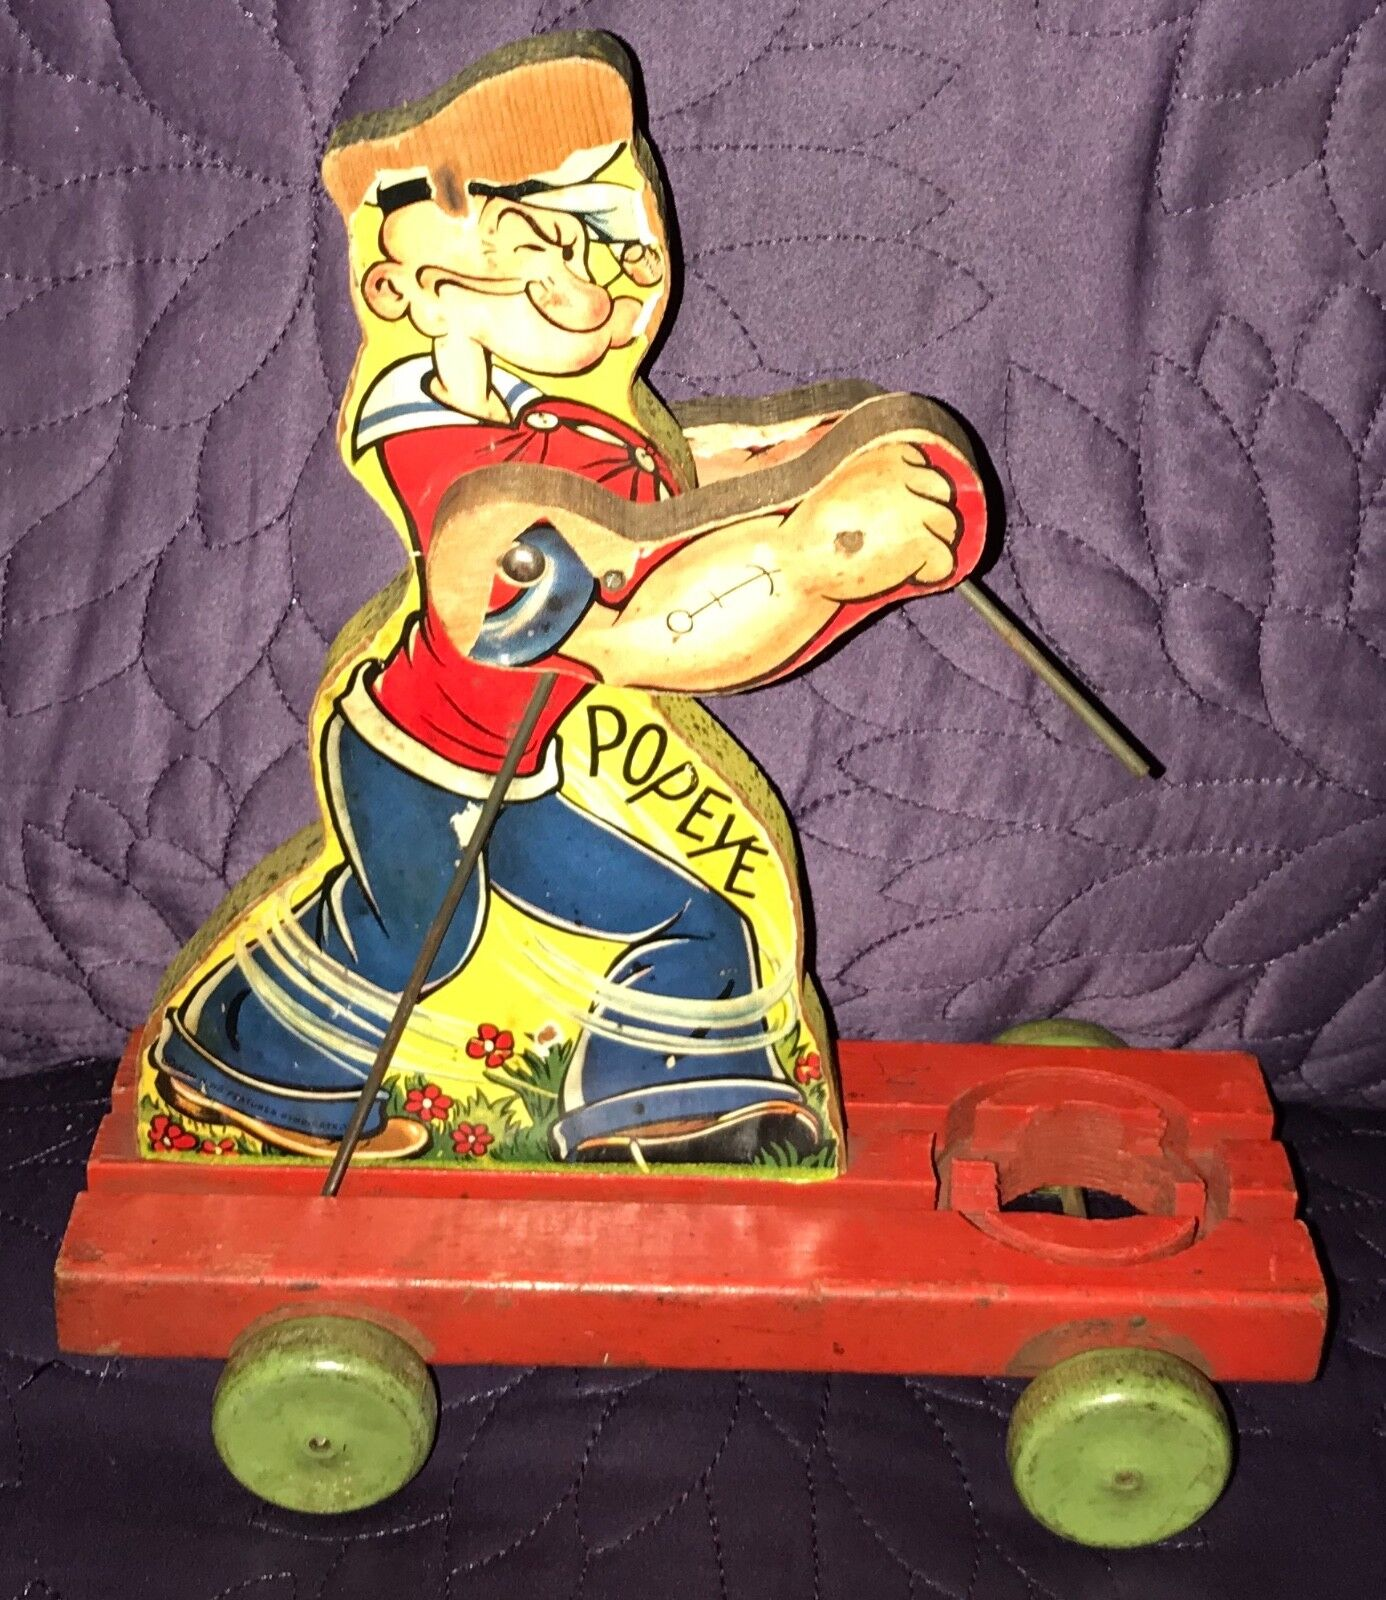 FISHER PRICE  POPEYE  SPINACH EATER    C. 1930'S  PULL TOY bb1a9a